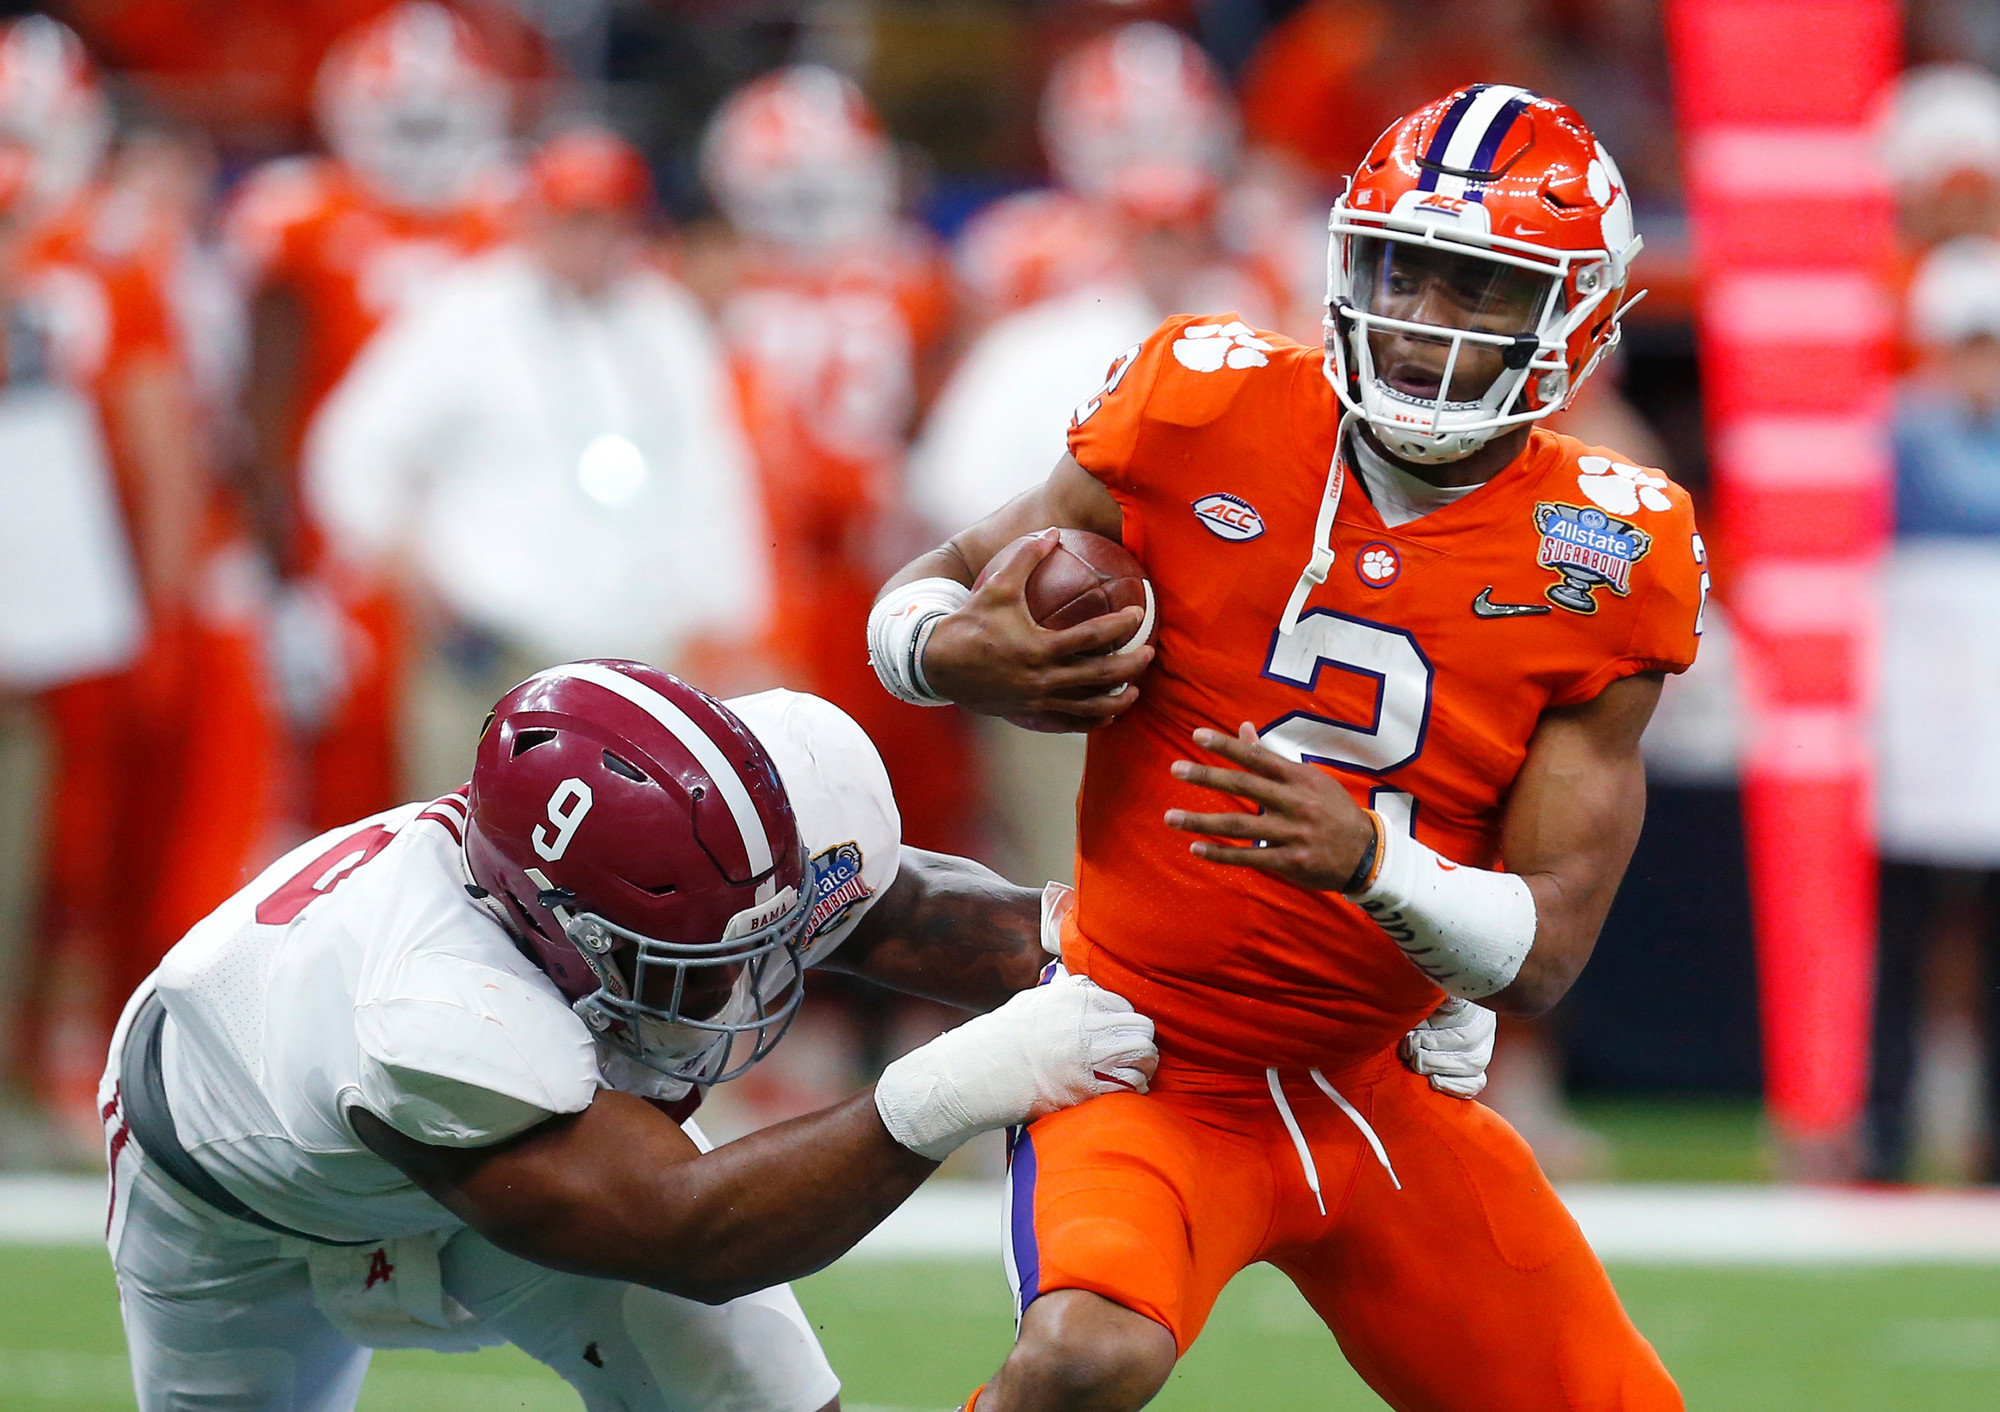 THE ASSOCIATED PRESS  Clemson quarterback Kelly Bryant (2) is sacked by Alabama defensive lineman Da'Shawn Hand (9) in the Tigers' College Football Playoff loss last season. Clemson is hoping to use that loss as motivation for the upcoming season.